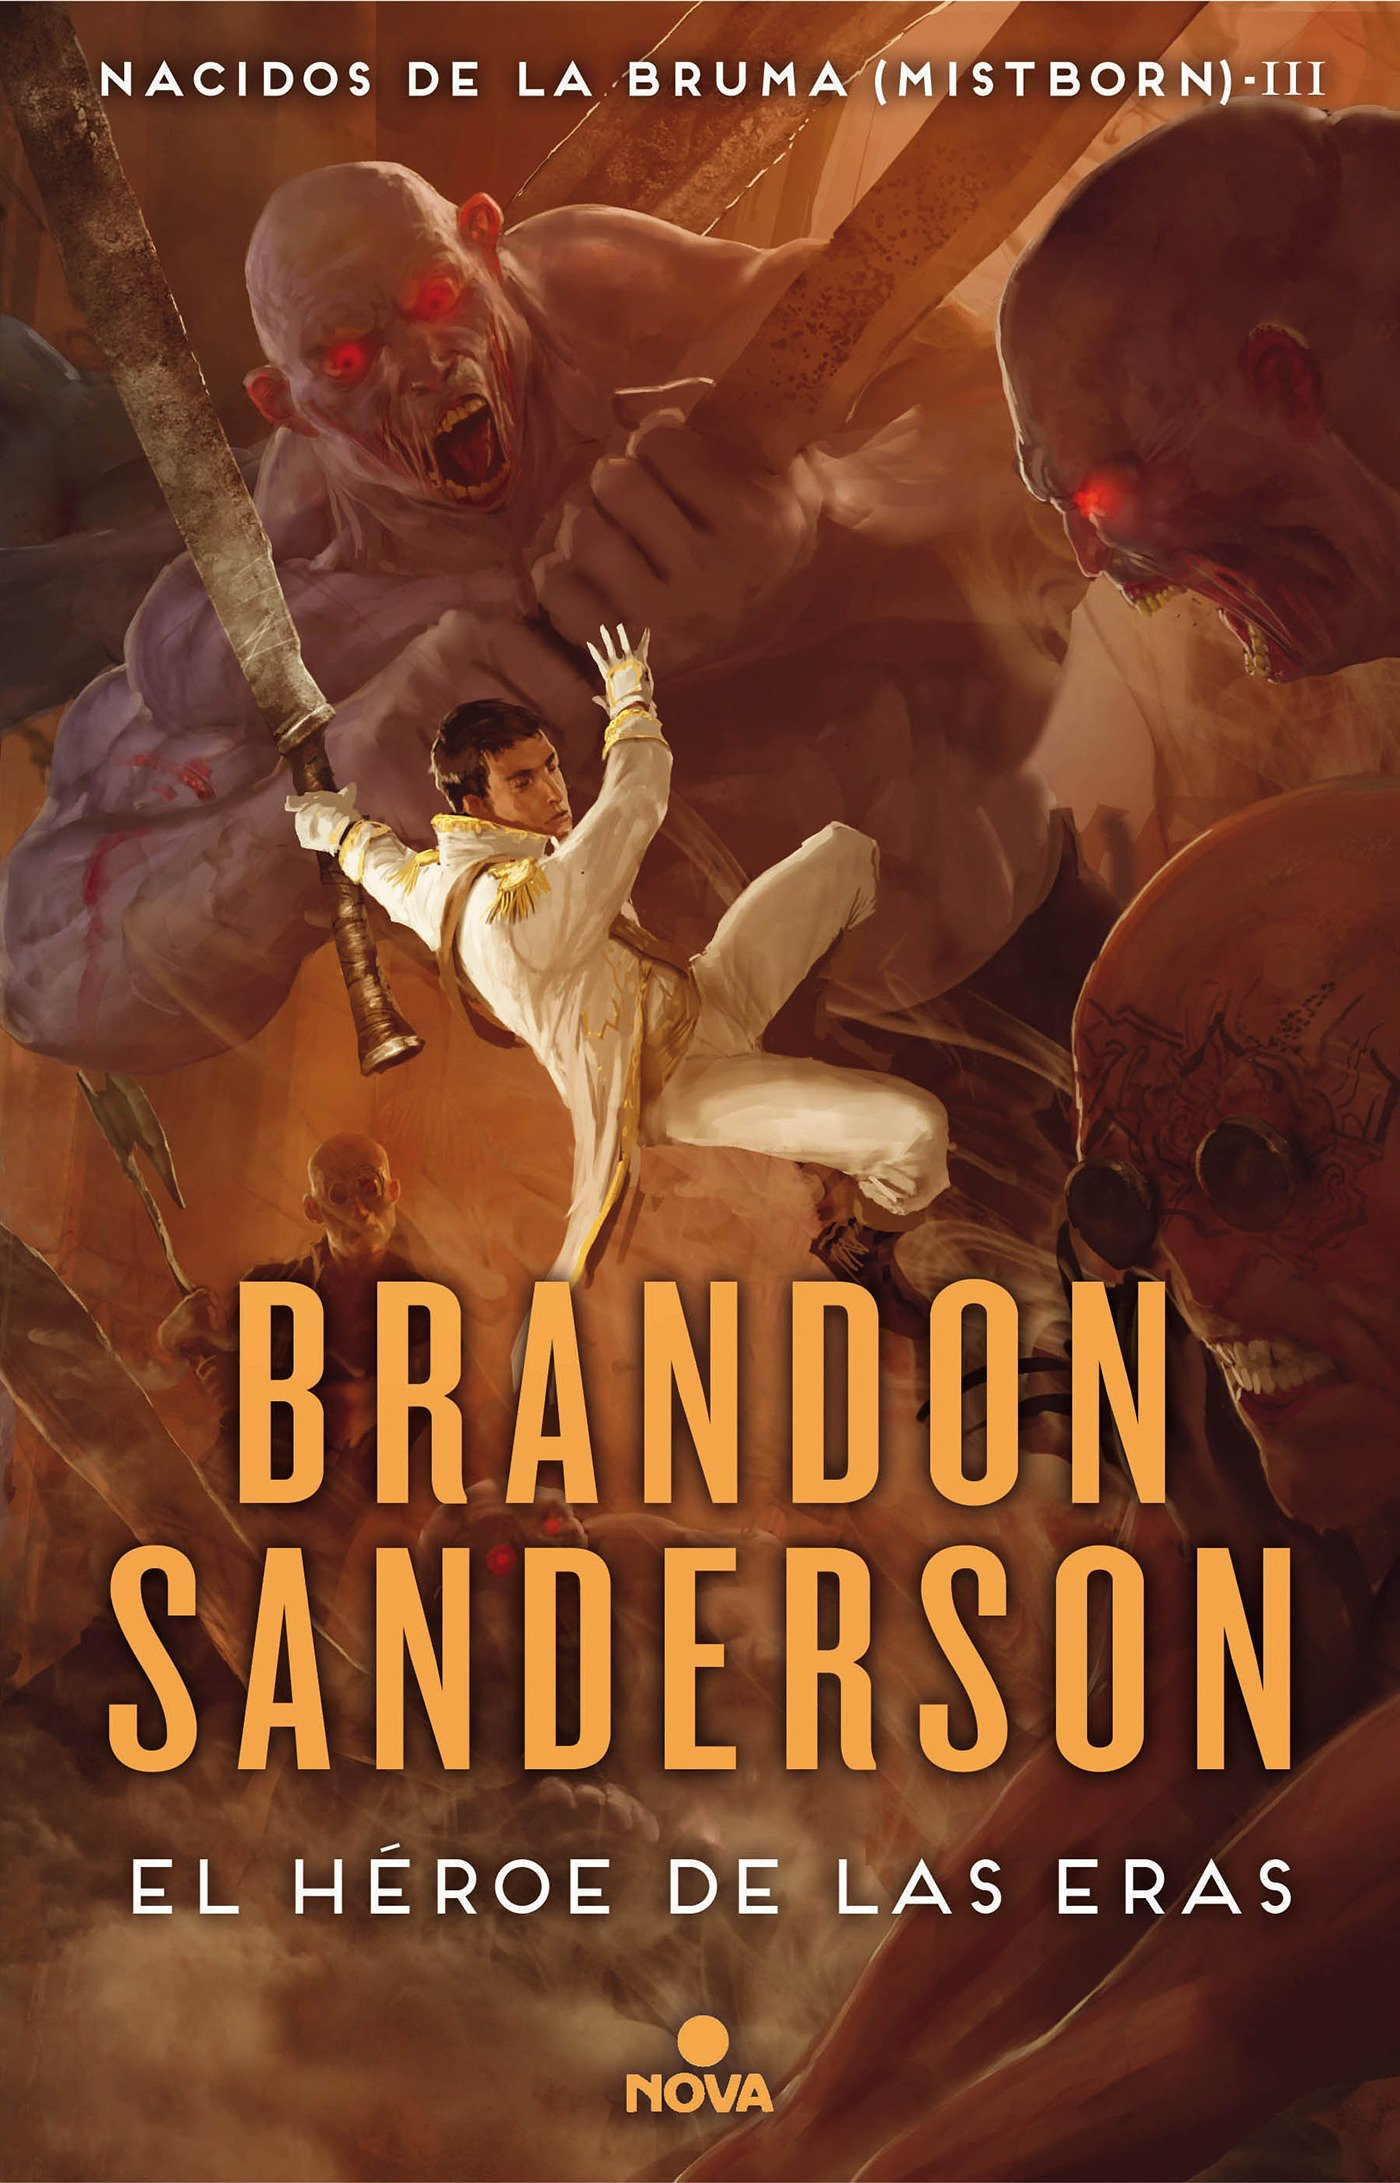 El Héroe de las Eras (Nacidos de la bruma [Mistborn] 3) (NOVA) Tapa dura – 5 oct 2016 Brandon Sanderson 8466658912 Fantasy fiction. Imaginary places; Fiction.